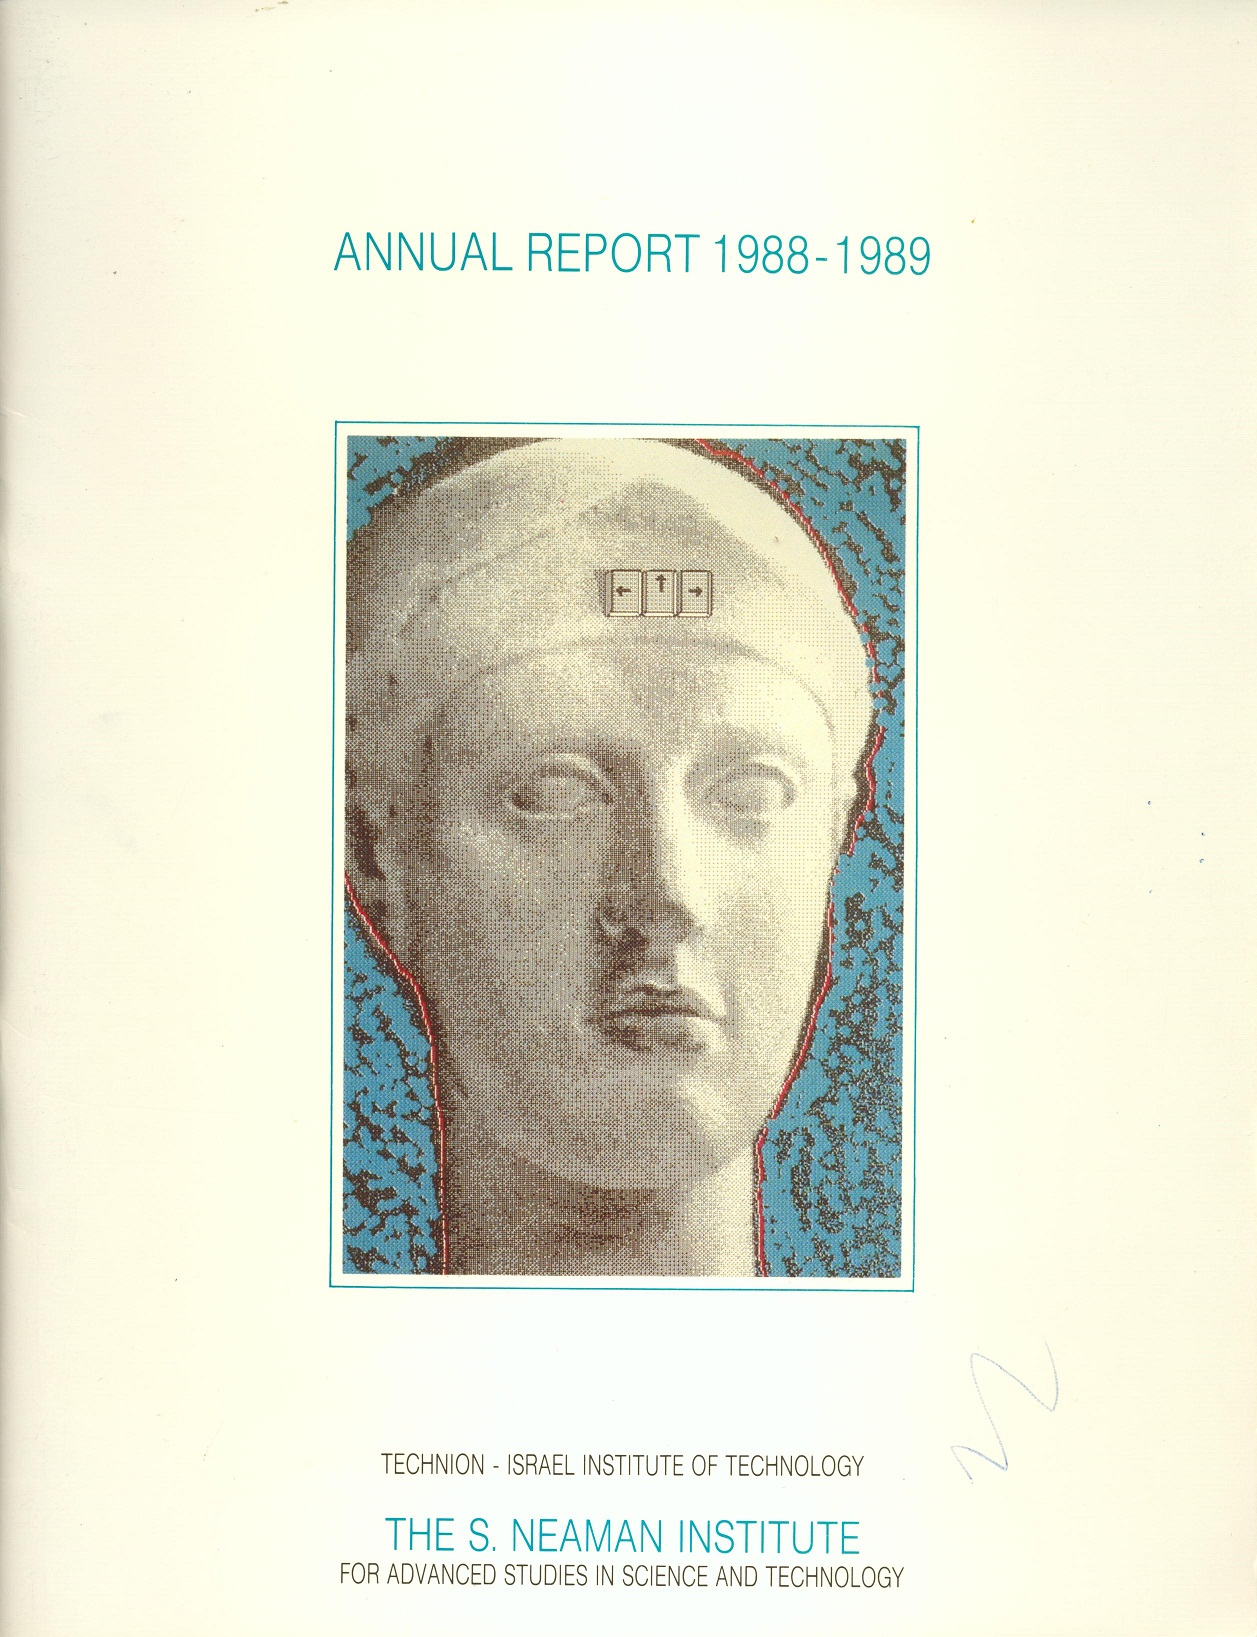 Annual Report 1988-1989 Samuel Neaman Institute